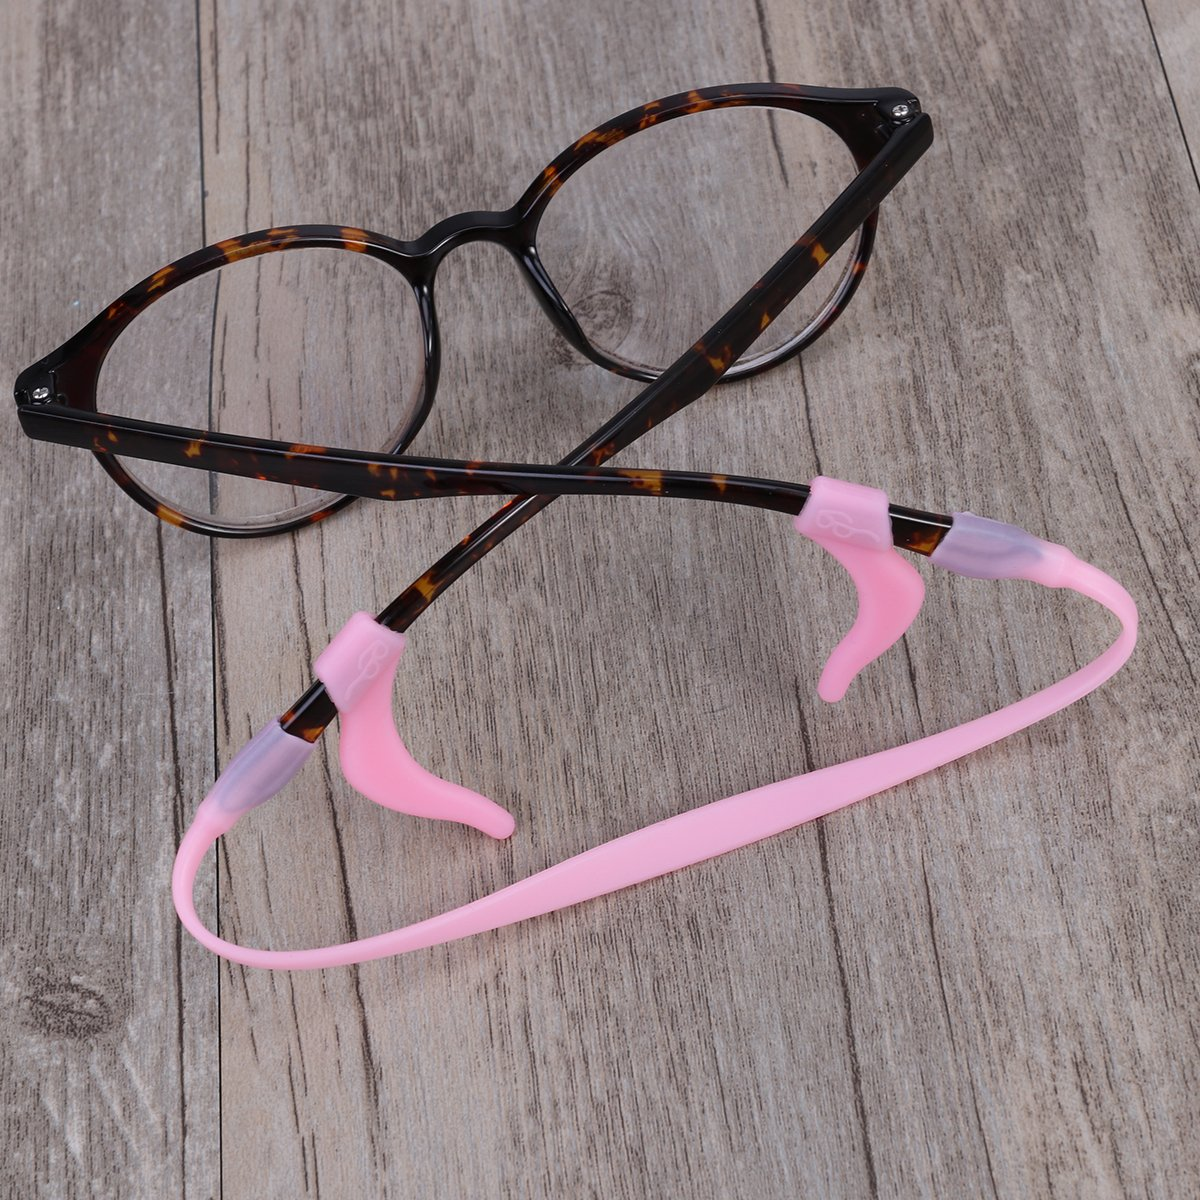 rosenice Silicone Adjustable Elastic Glasses and Hook for Firm Liner and Strap Set for Children in Pink 5/Kit